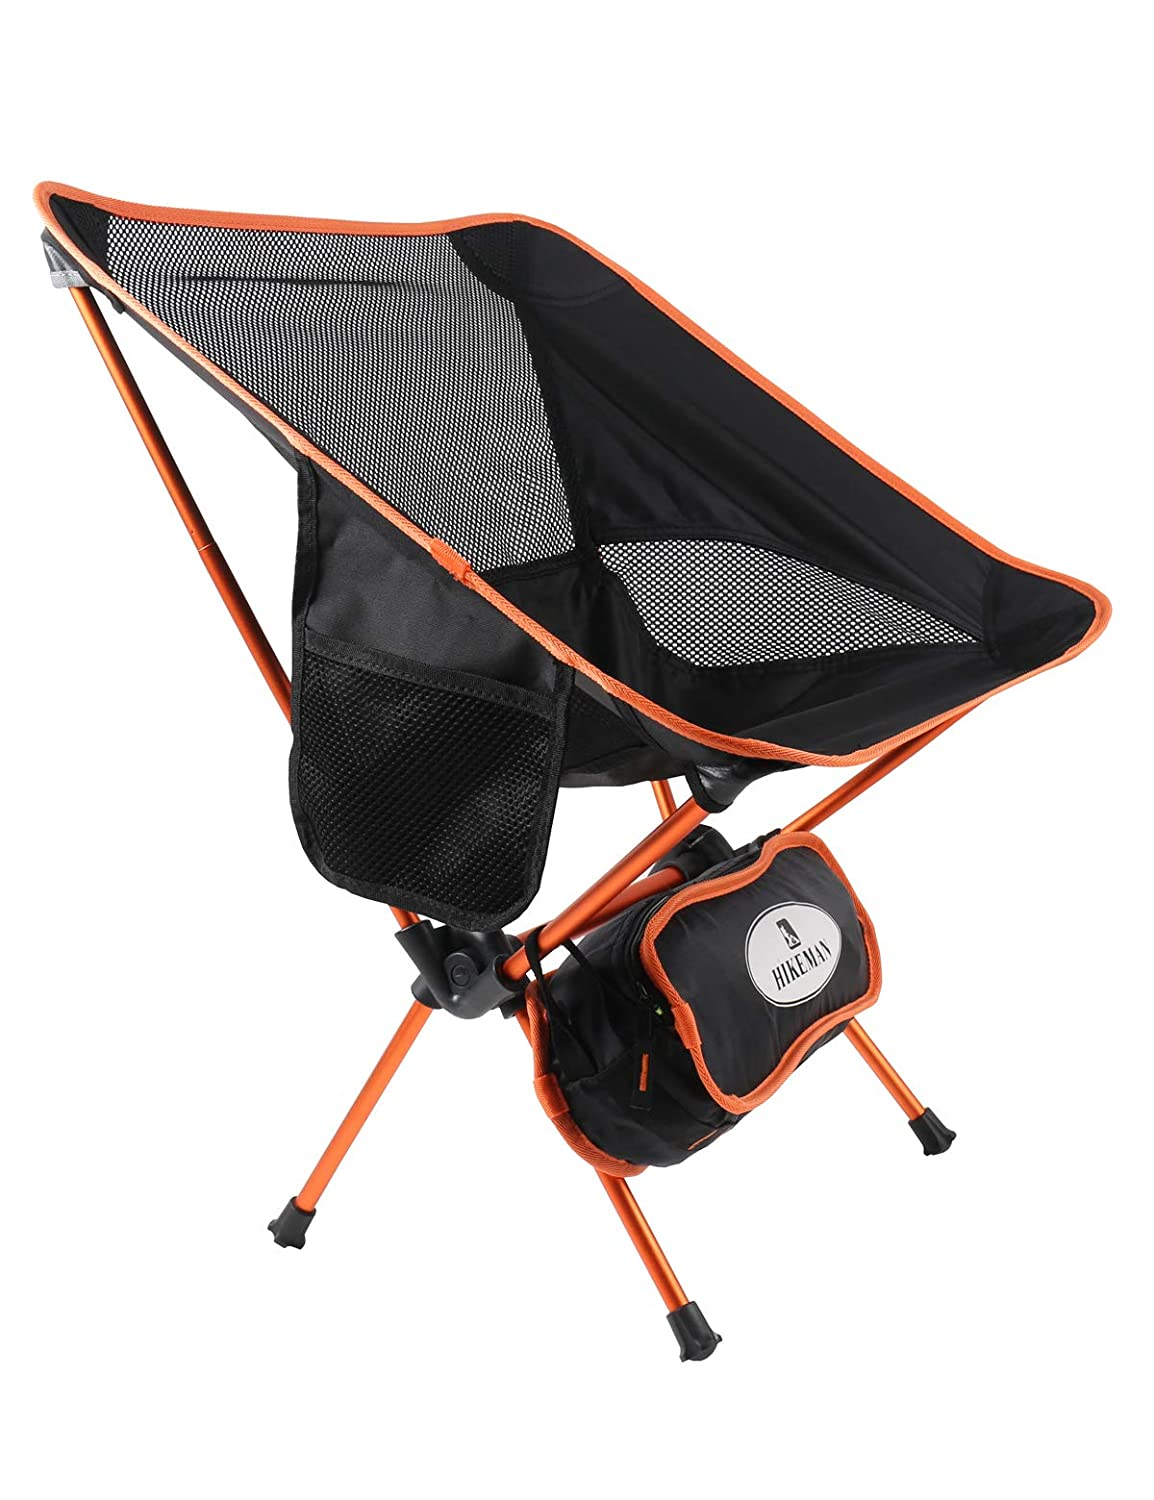 Hikeman Ultralight Portable Foldable Camping Backpacking Chairs Carry Bag, Lightweight Breathable Comfortable Folding Picnic